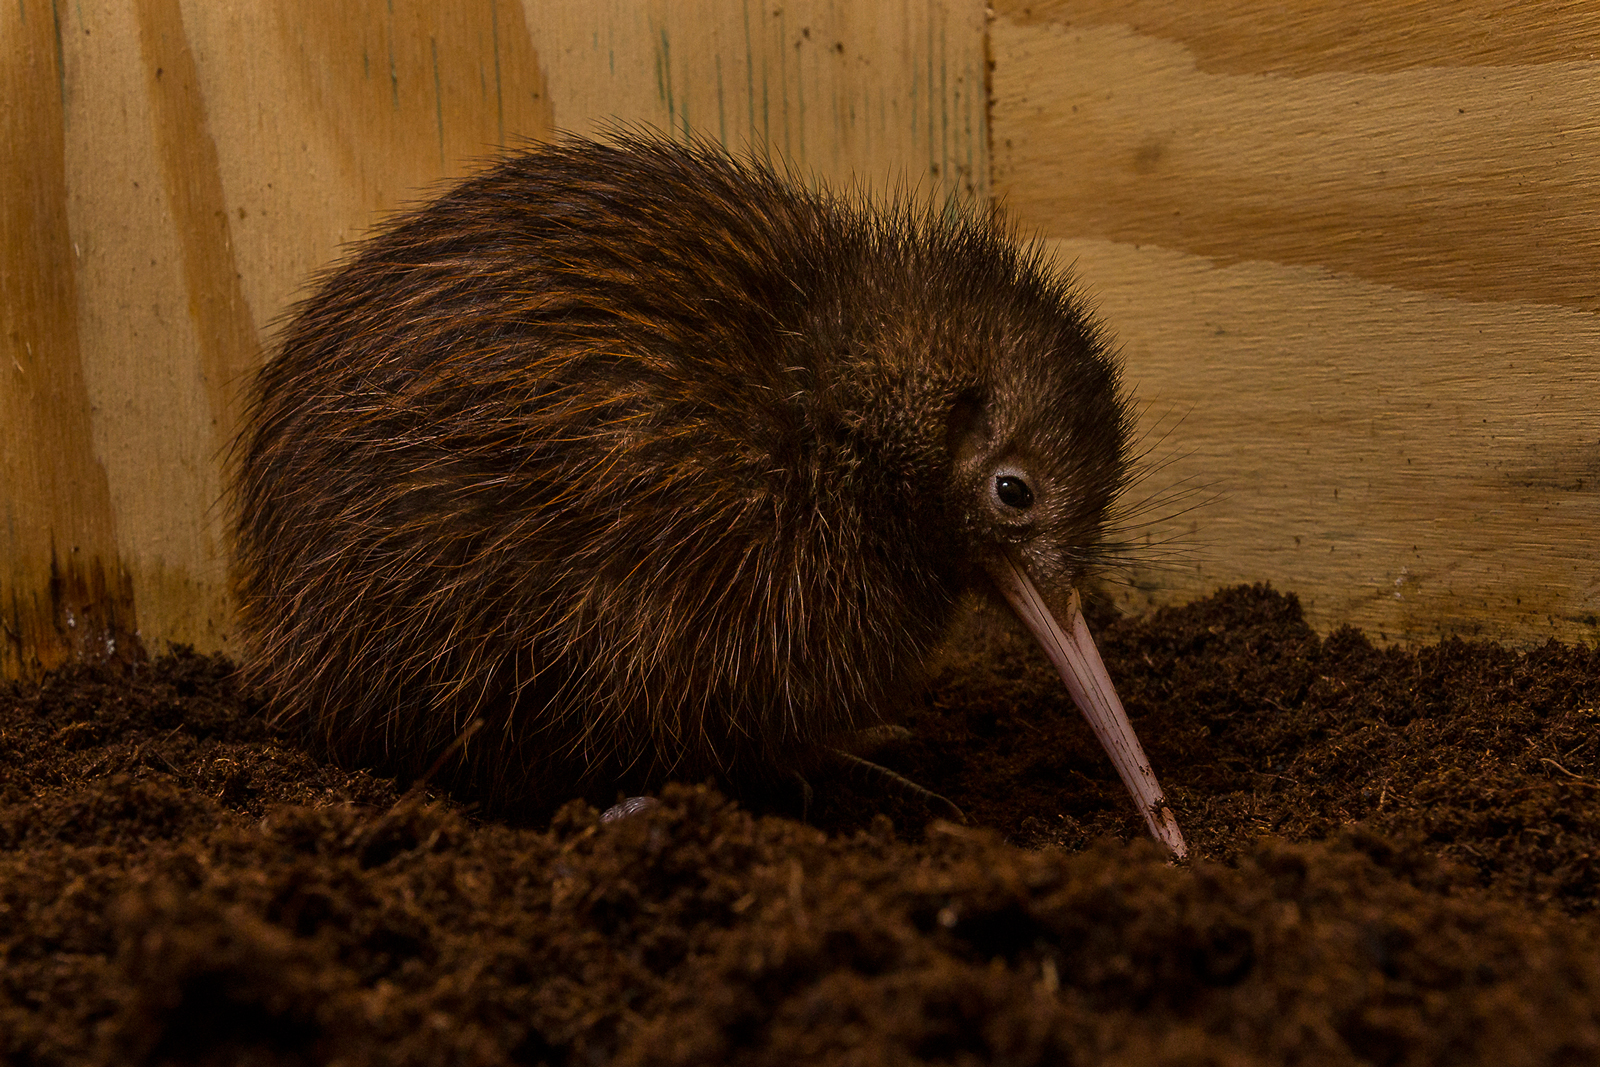 Brown Kiwi Chick Thriving at San Diego Zoo's Avian Propagation Center